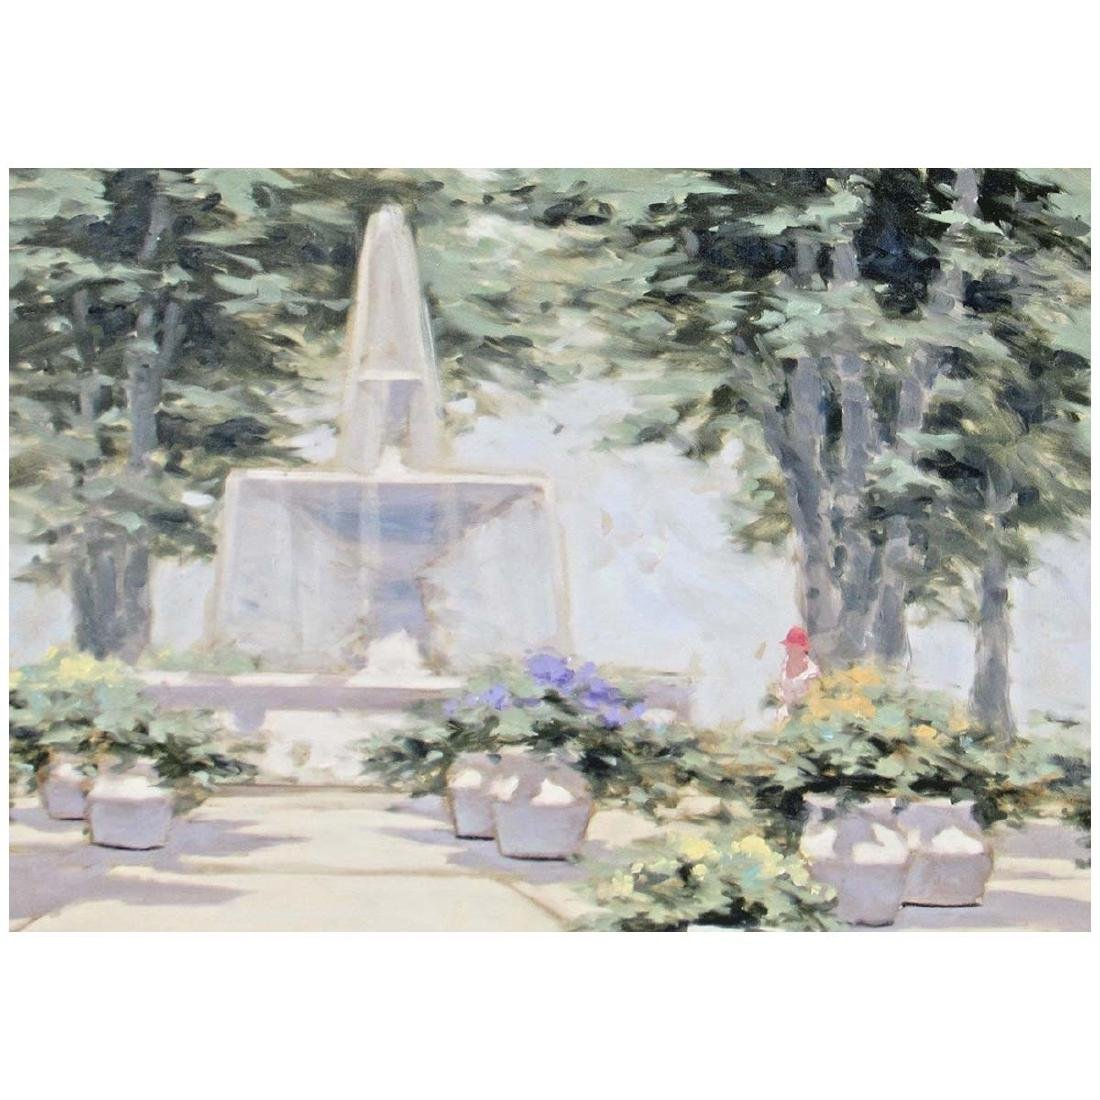 ANDRE GISSON OIL PAINTING WOMAN AND FLOWER FOUNTAIN - 3